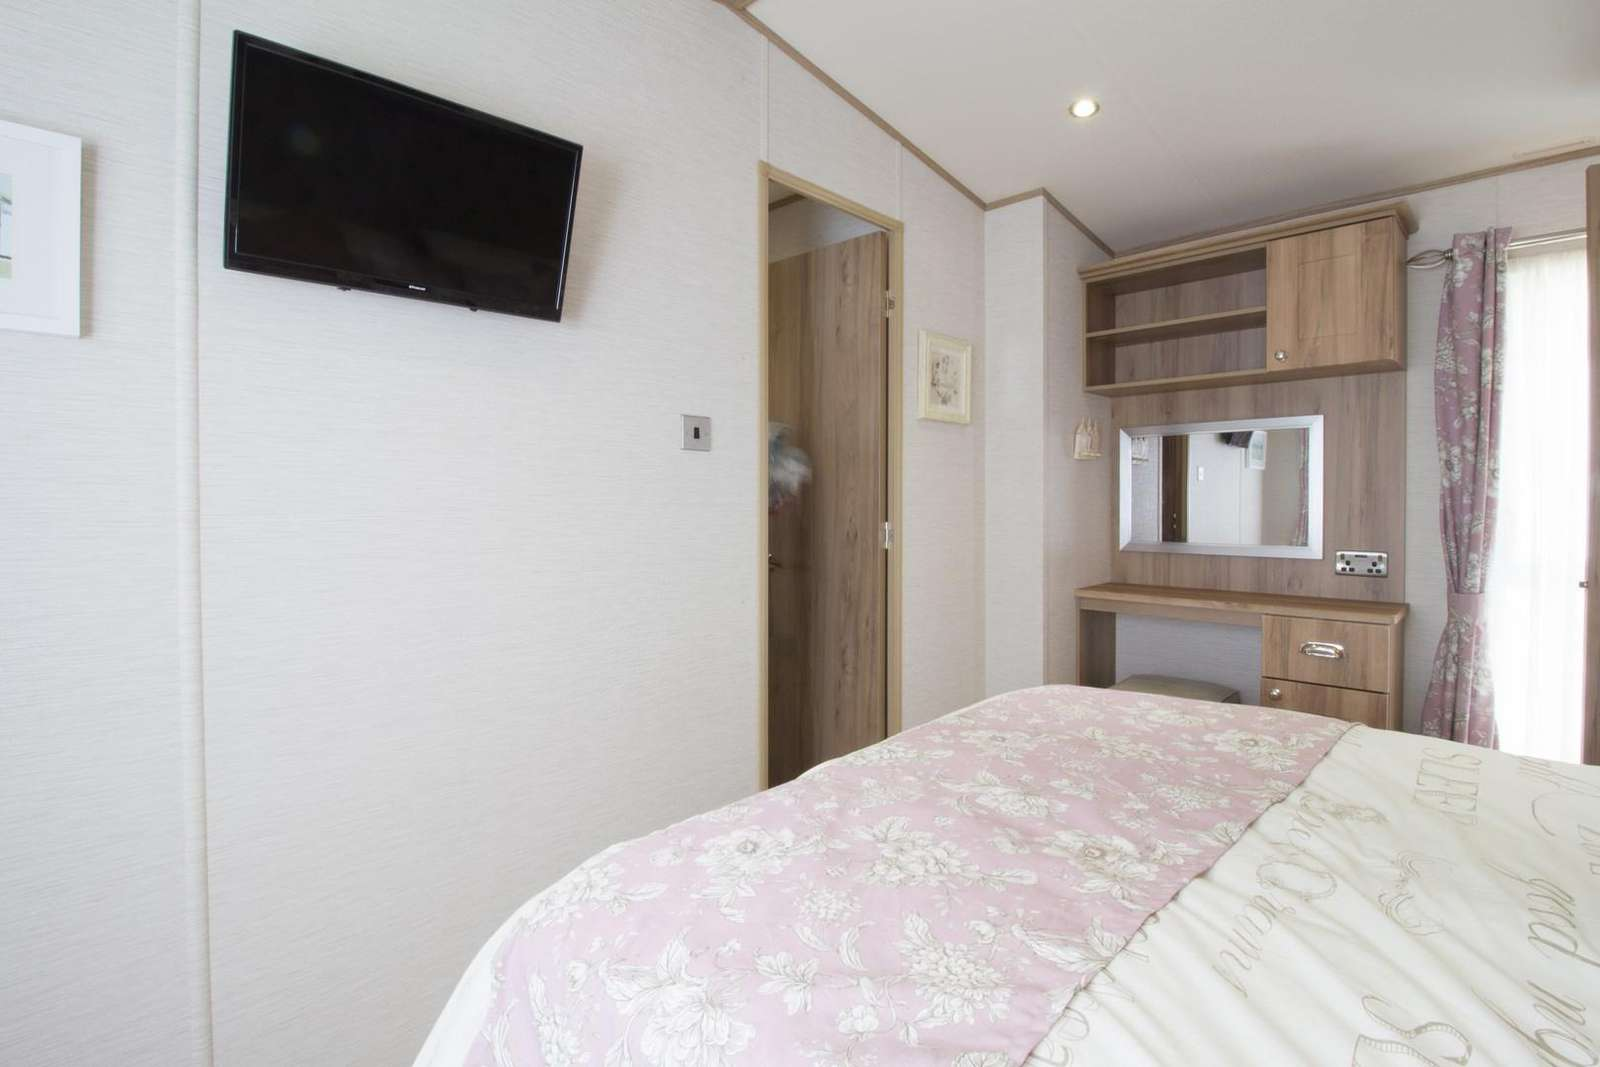 double glazing central heated bedroom in Hopton with flat screen tv